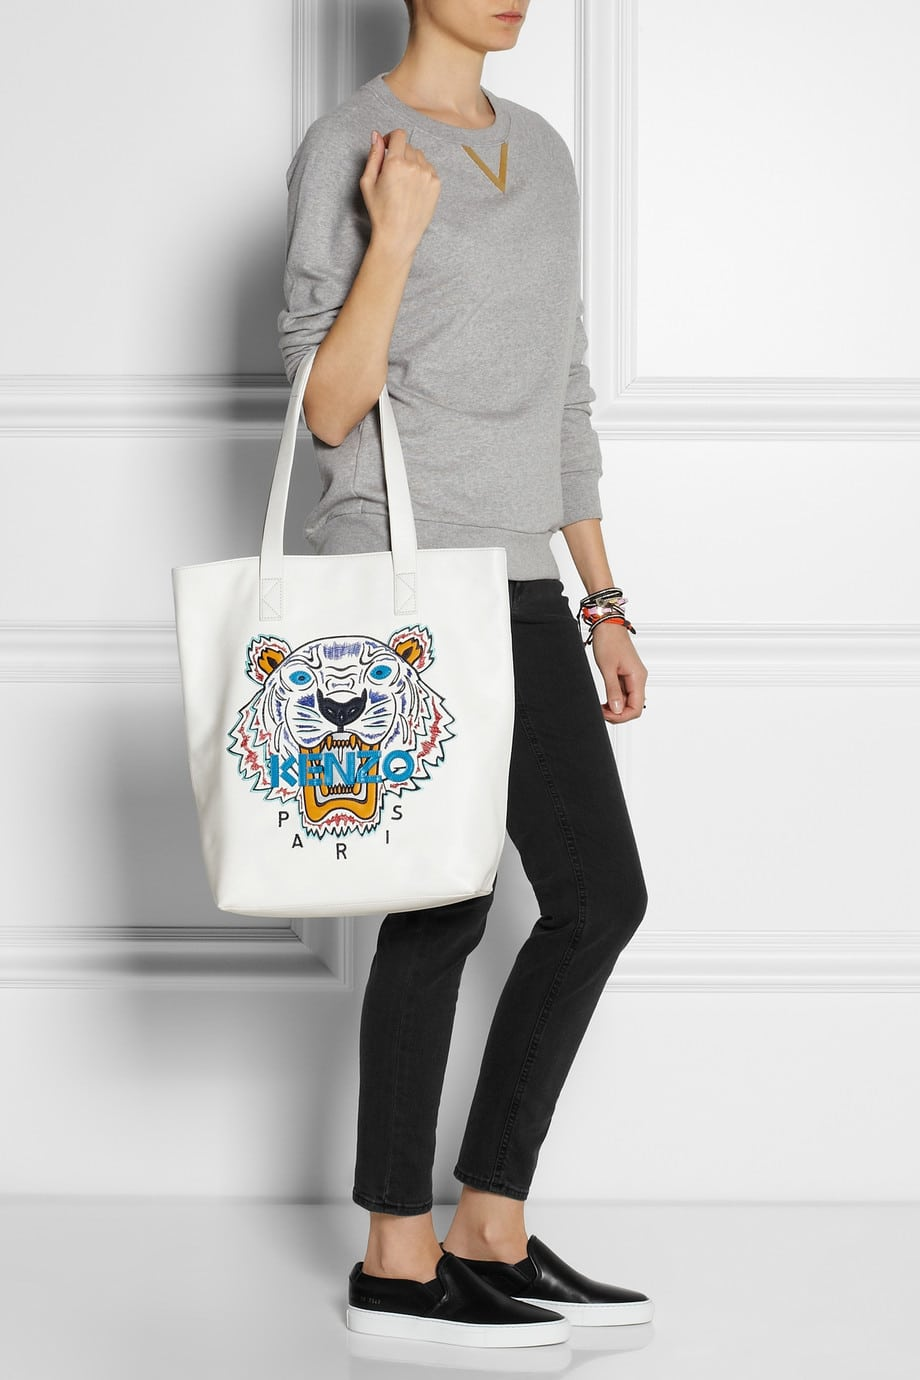 ny2016-gift-kenzo-tiger-embroidered-leather-tote